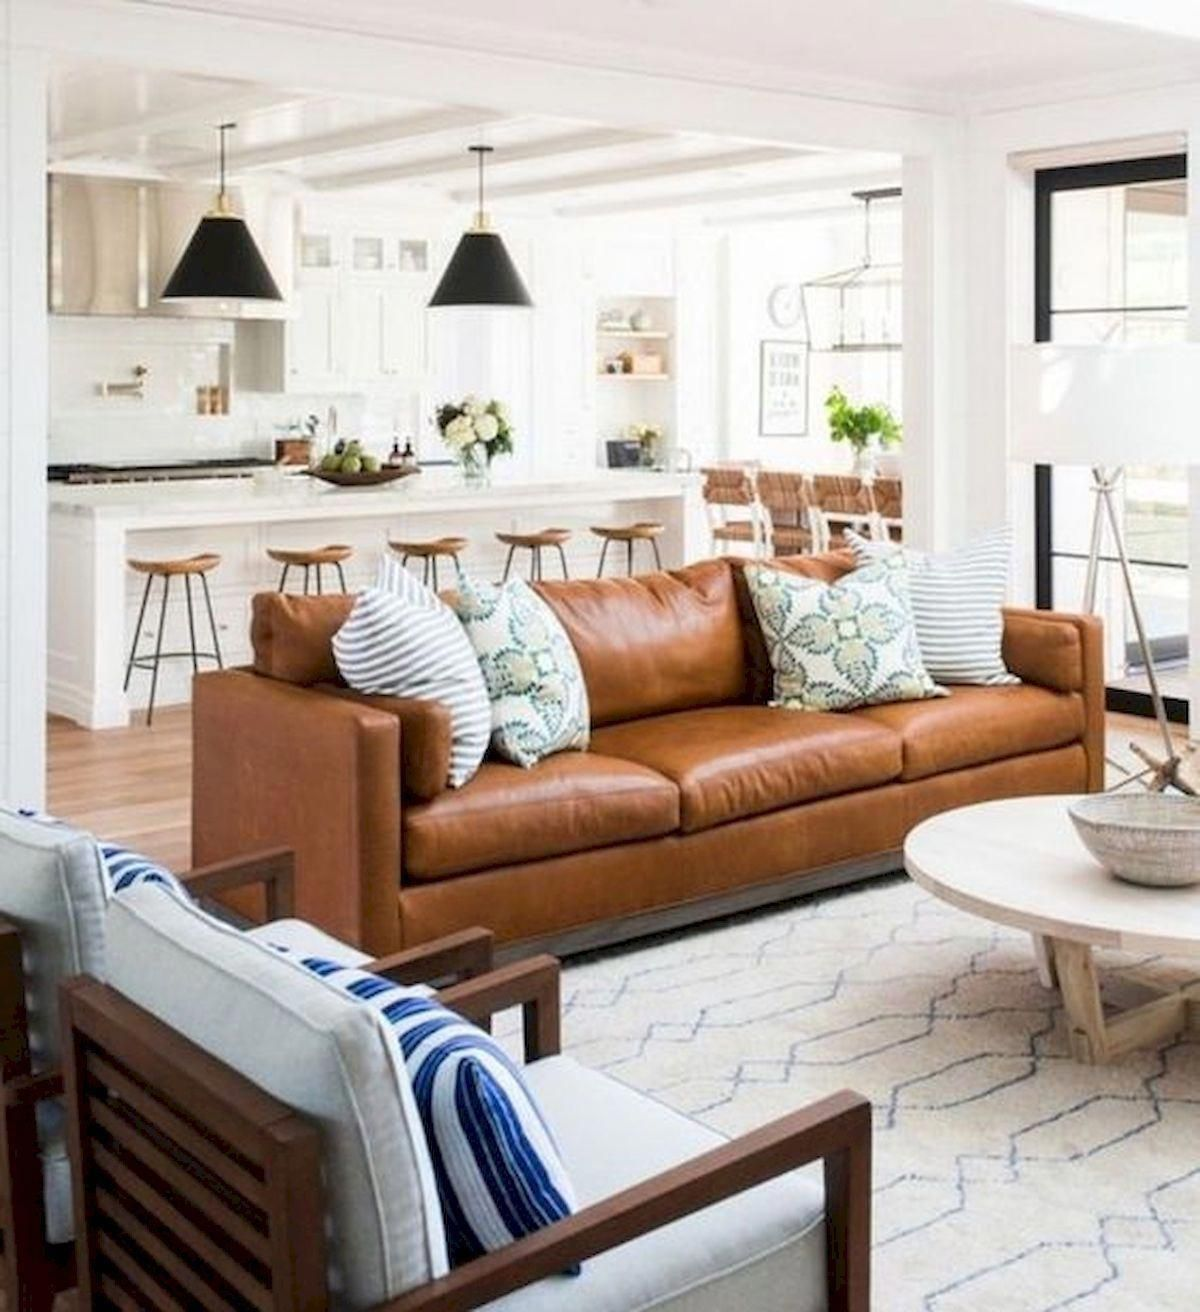 40 Best Modern Farmhouse Sofa Family Rooms Decor Ideas And Design 24 Modernhomede Farm House Living Room Brown Couch Living Room Leather Couches Living Room